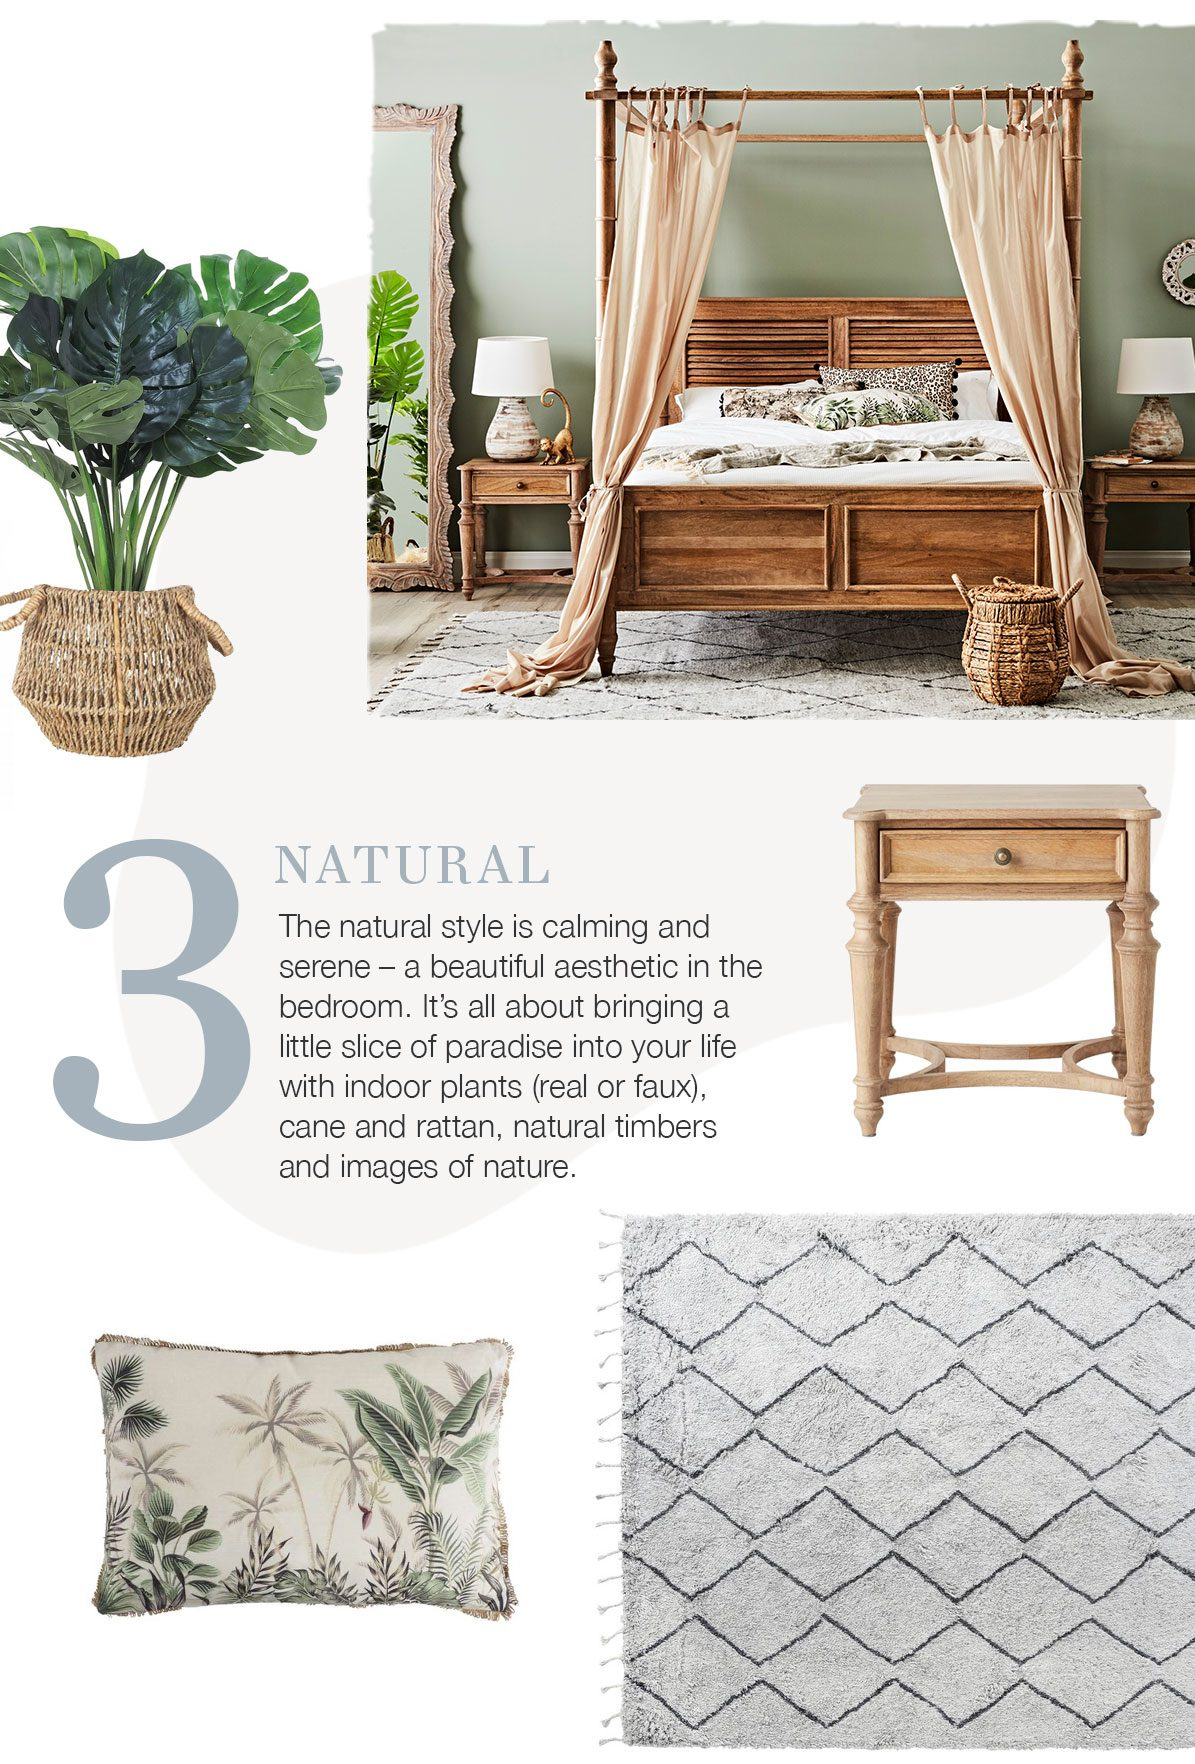 3 Dreamy Decorating Ideas for Your Bedroom - natural